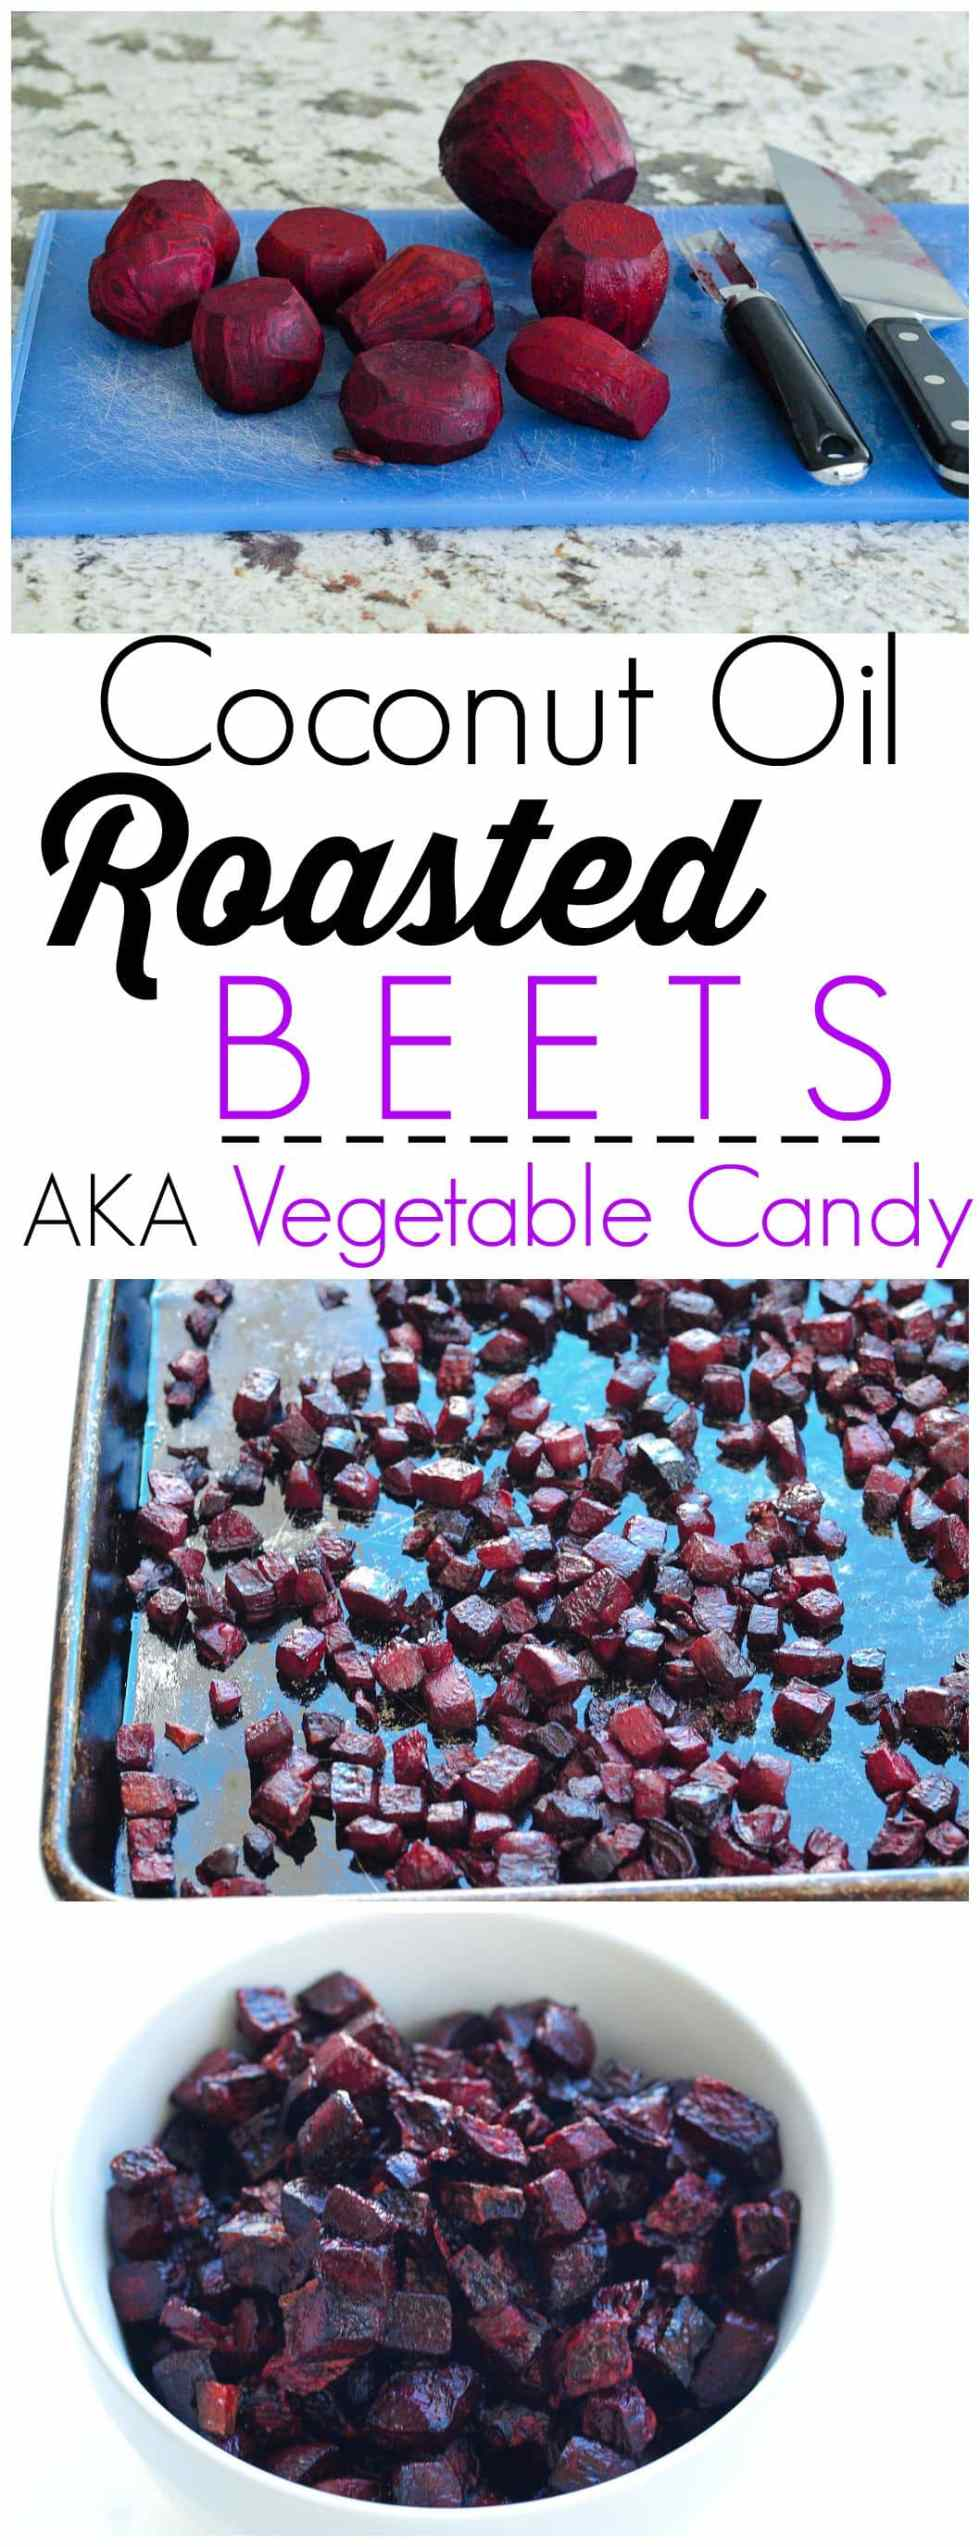 Coconut Oil Roasted Beets recipe. I like to call these beets Vegetable Candy! They are perfect sweet and caramelized. I could eat the whole bowl myself! Beets have amazing detox properties--this is a great way to eat them!